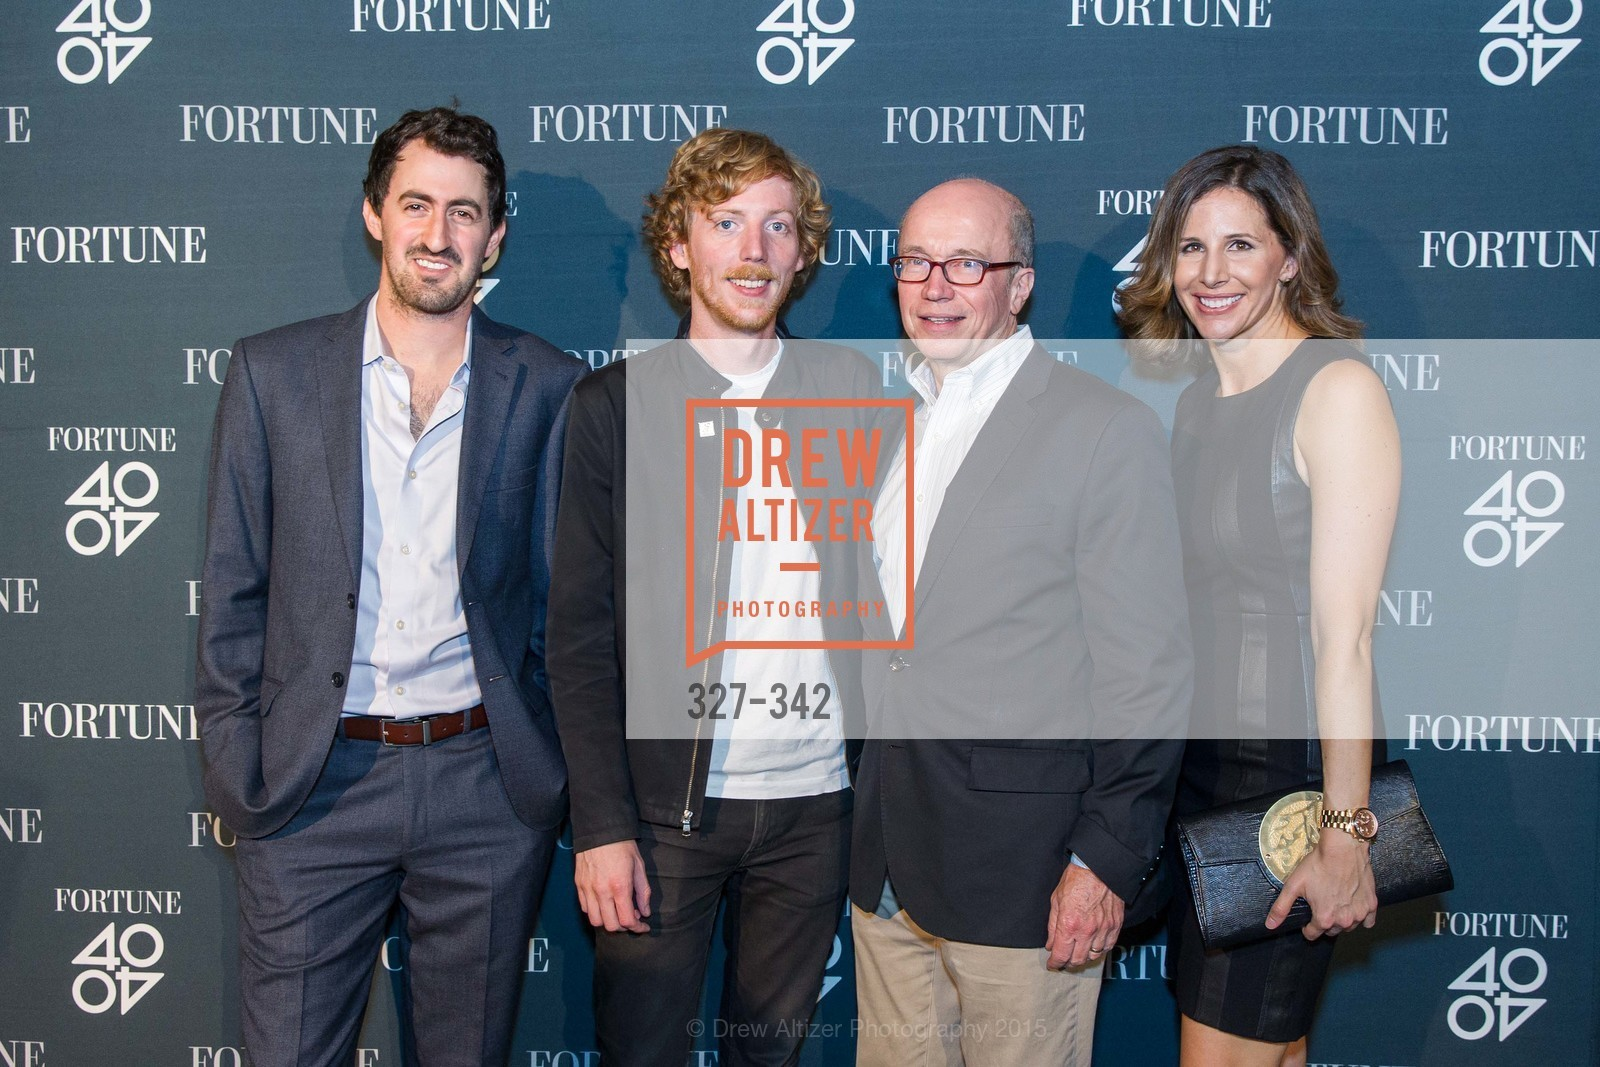 Daniel Roberts, Chris Wanstrath, Alan Murray, Leigh Gallagher, Fortune's 40 Under 40 Party, GitHub HQ. 88 Colin P Kelly Jr St, October 7th, 2015,Drew Altizer, Drew Altizer Photography, full-service agency, private events, San Francisco photographer, photographer california